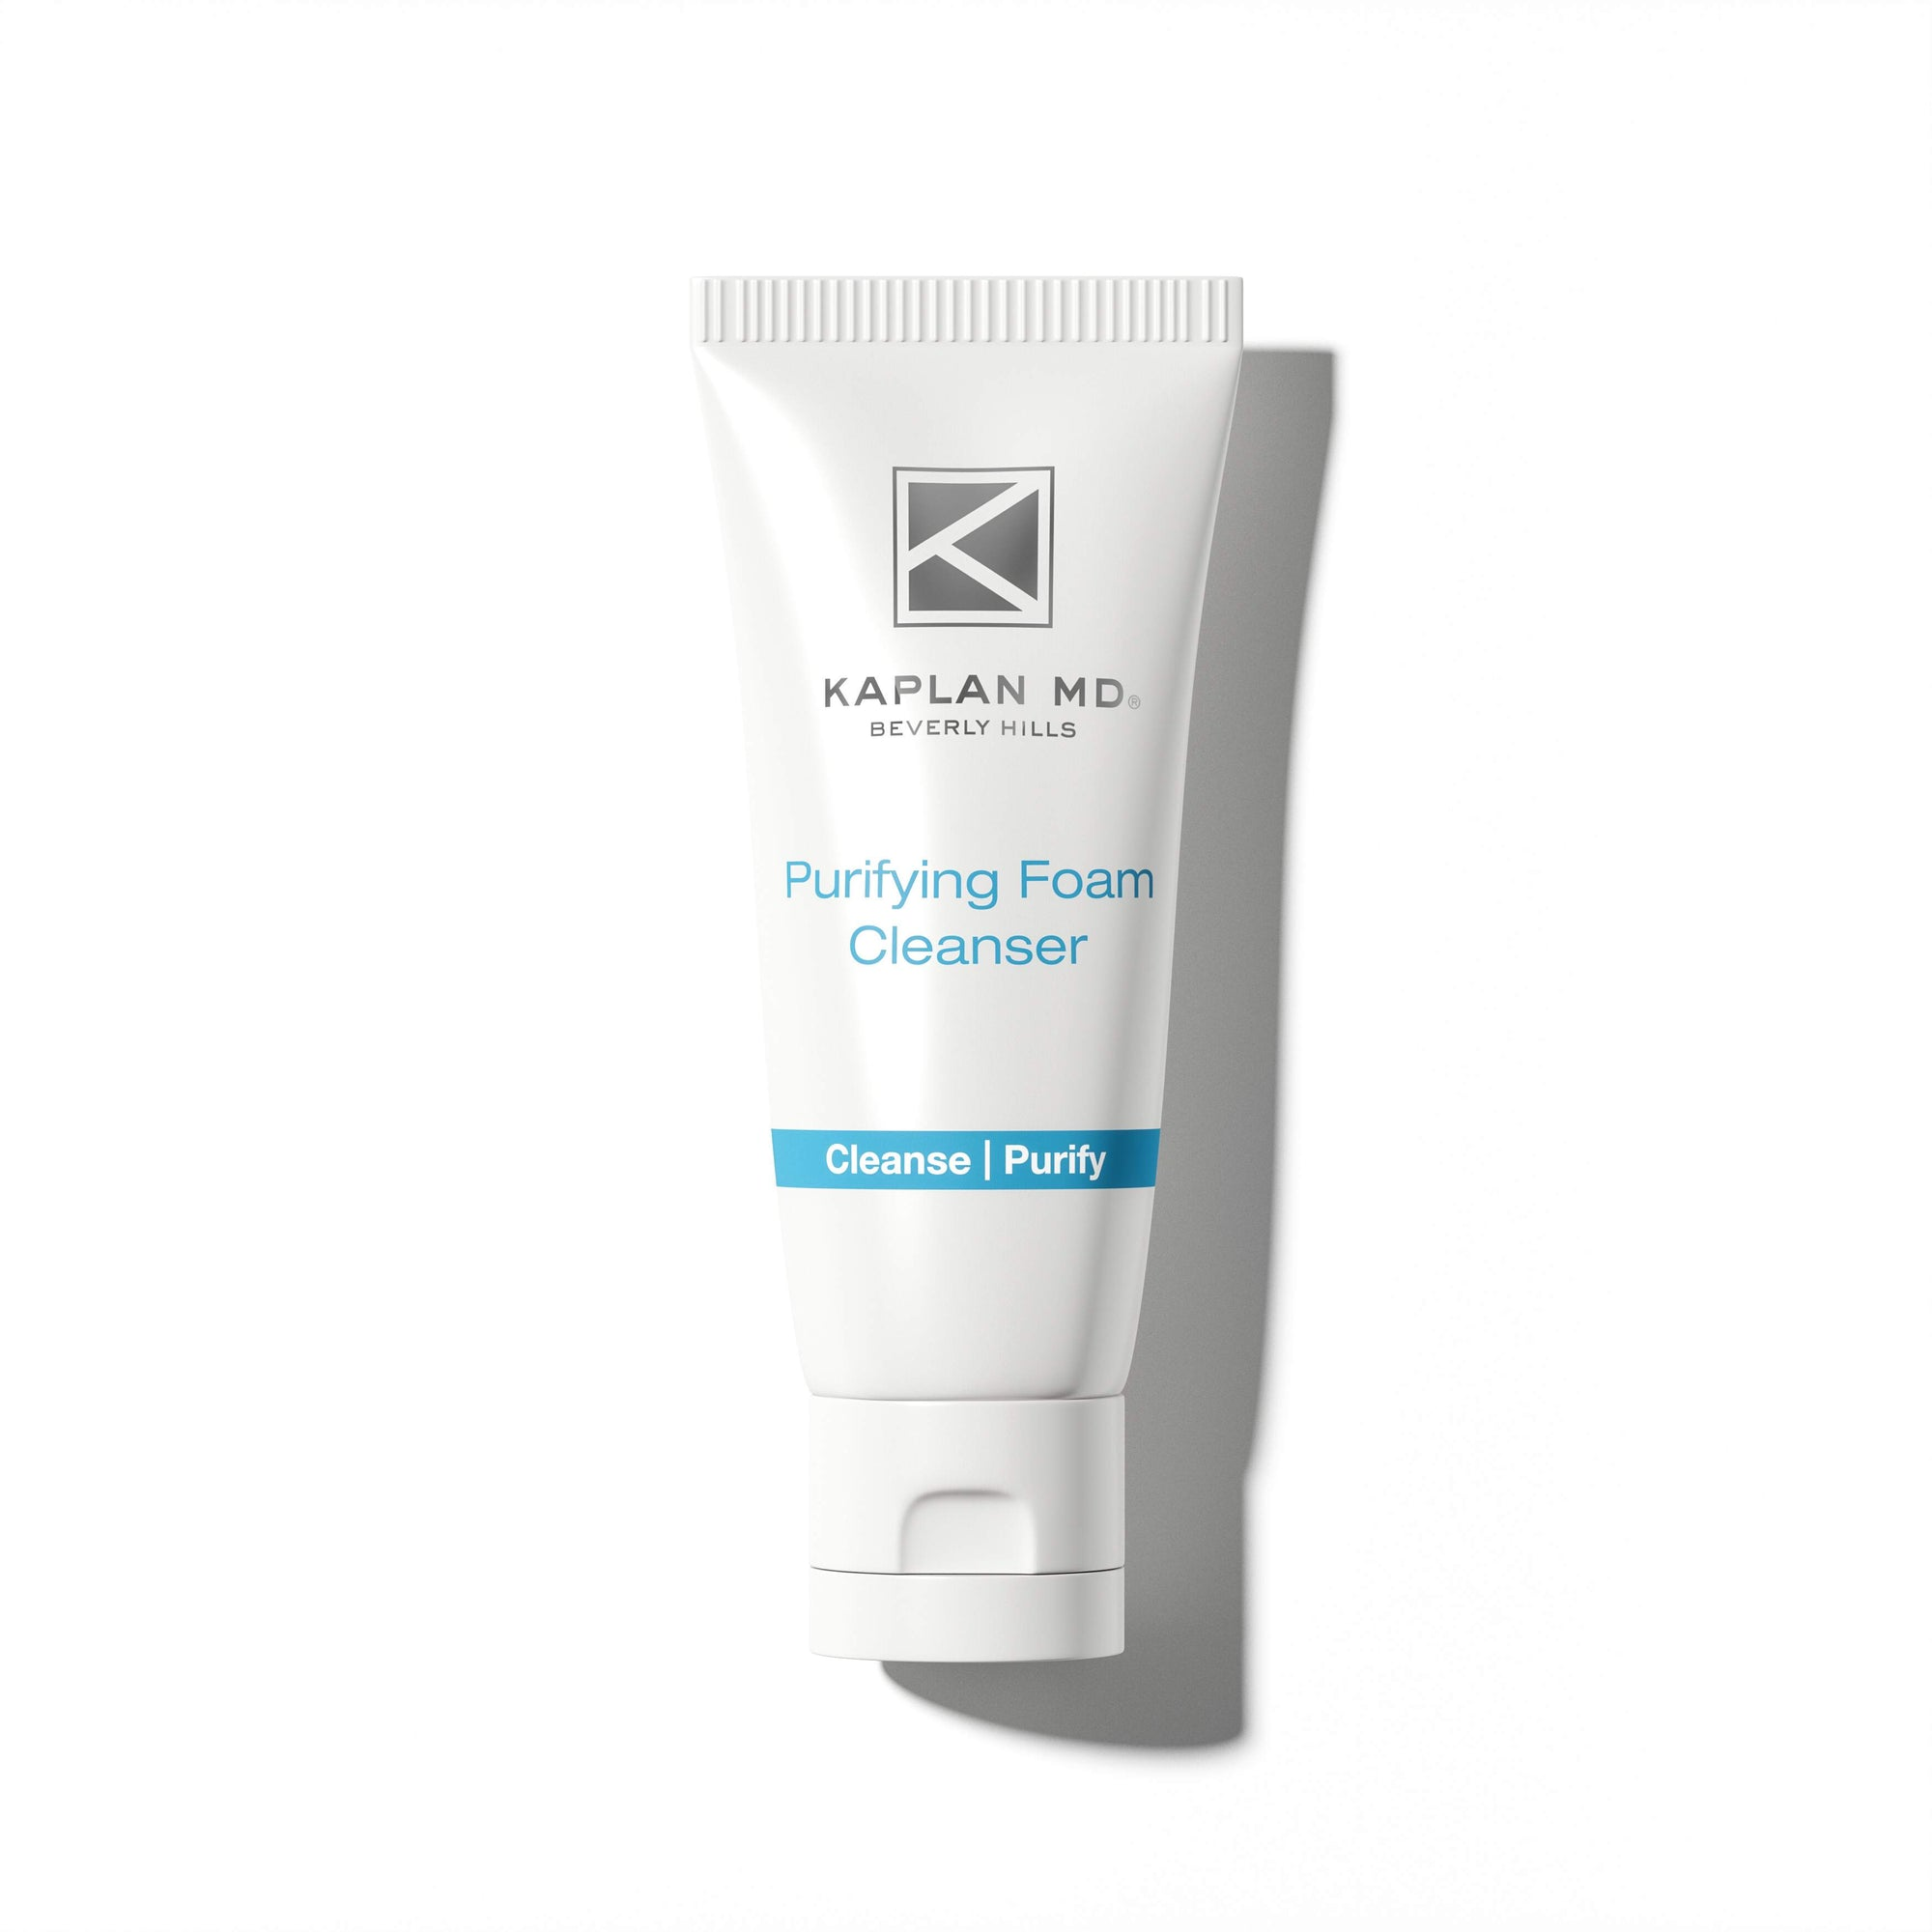 PURIFYING FOAM CLEANSER DELUXE MINI